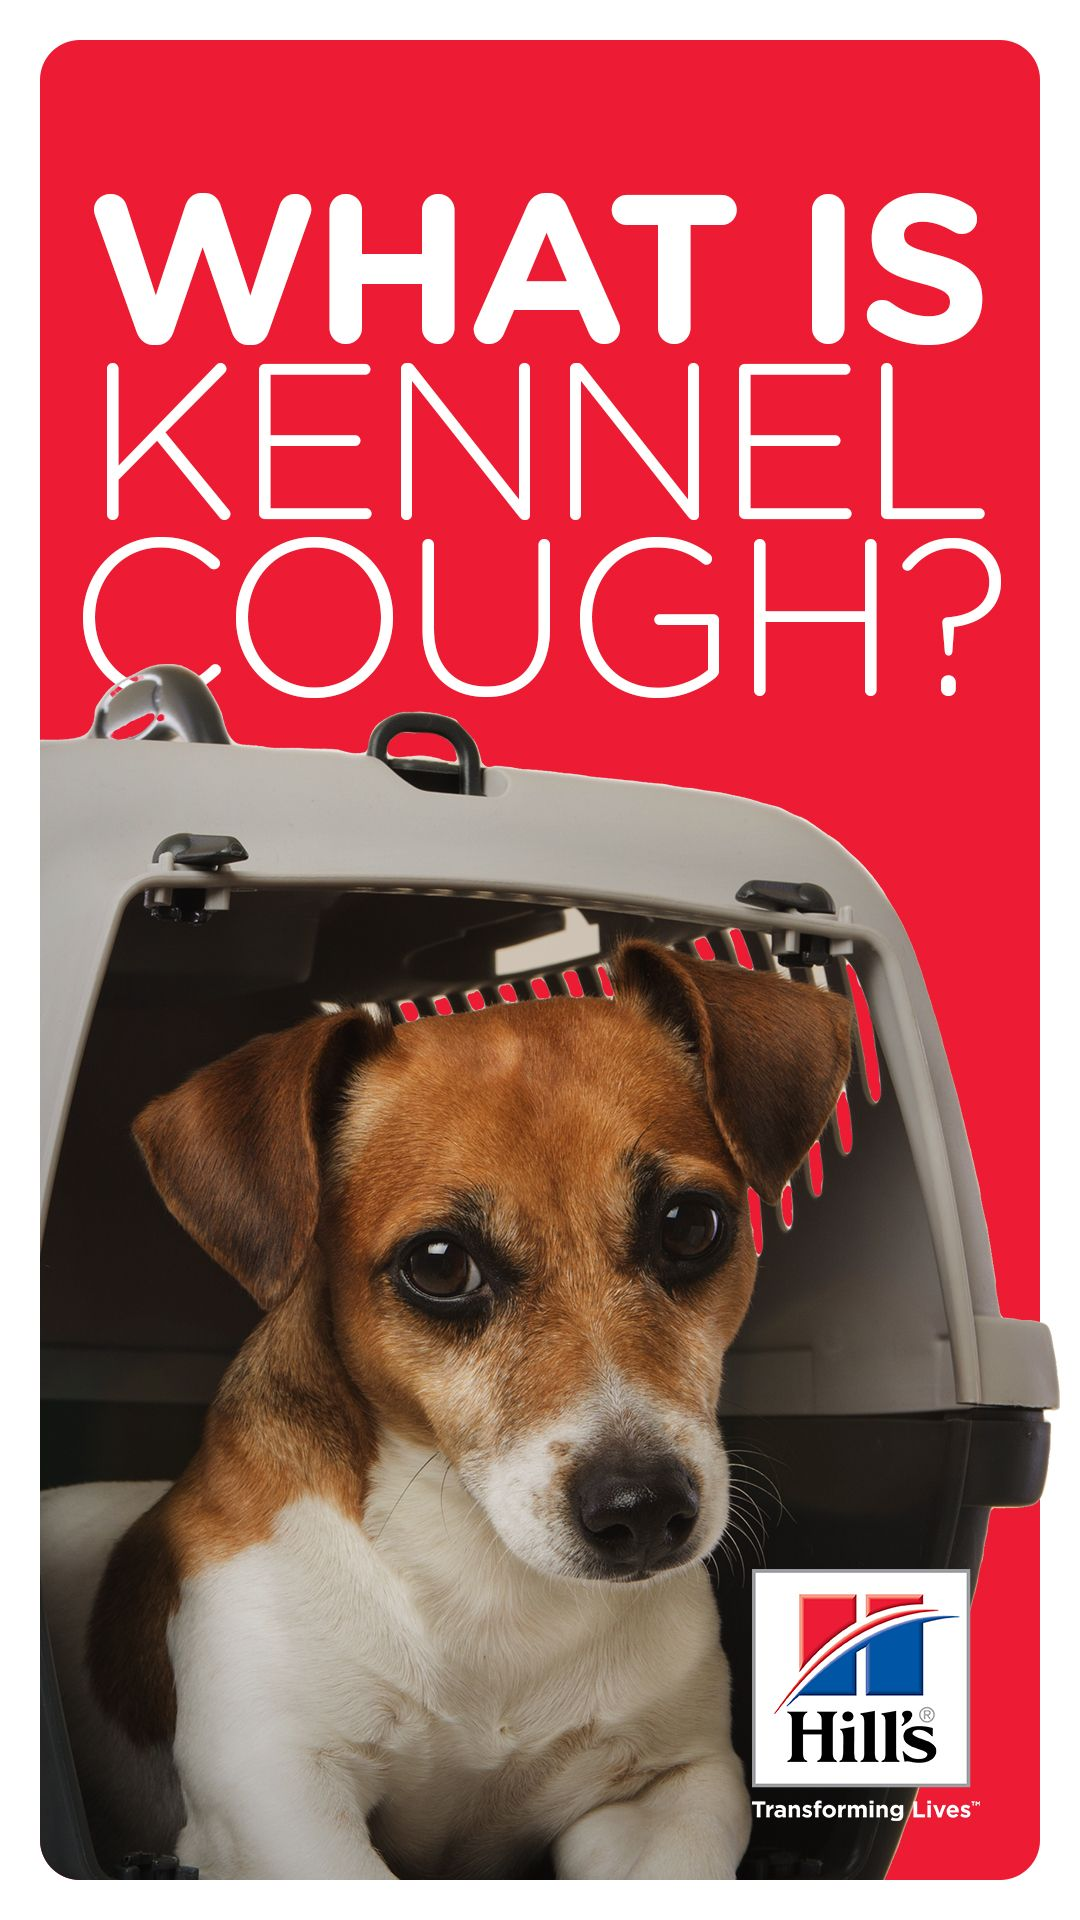 Kennel Cough In Dogs Cats Does My Pet Have It Hill S Pet Dog Coughing Kennel Dog Care